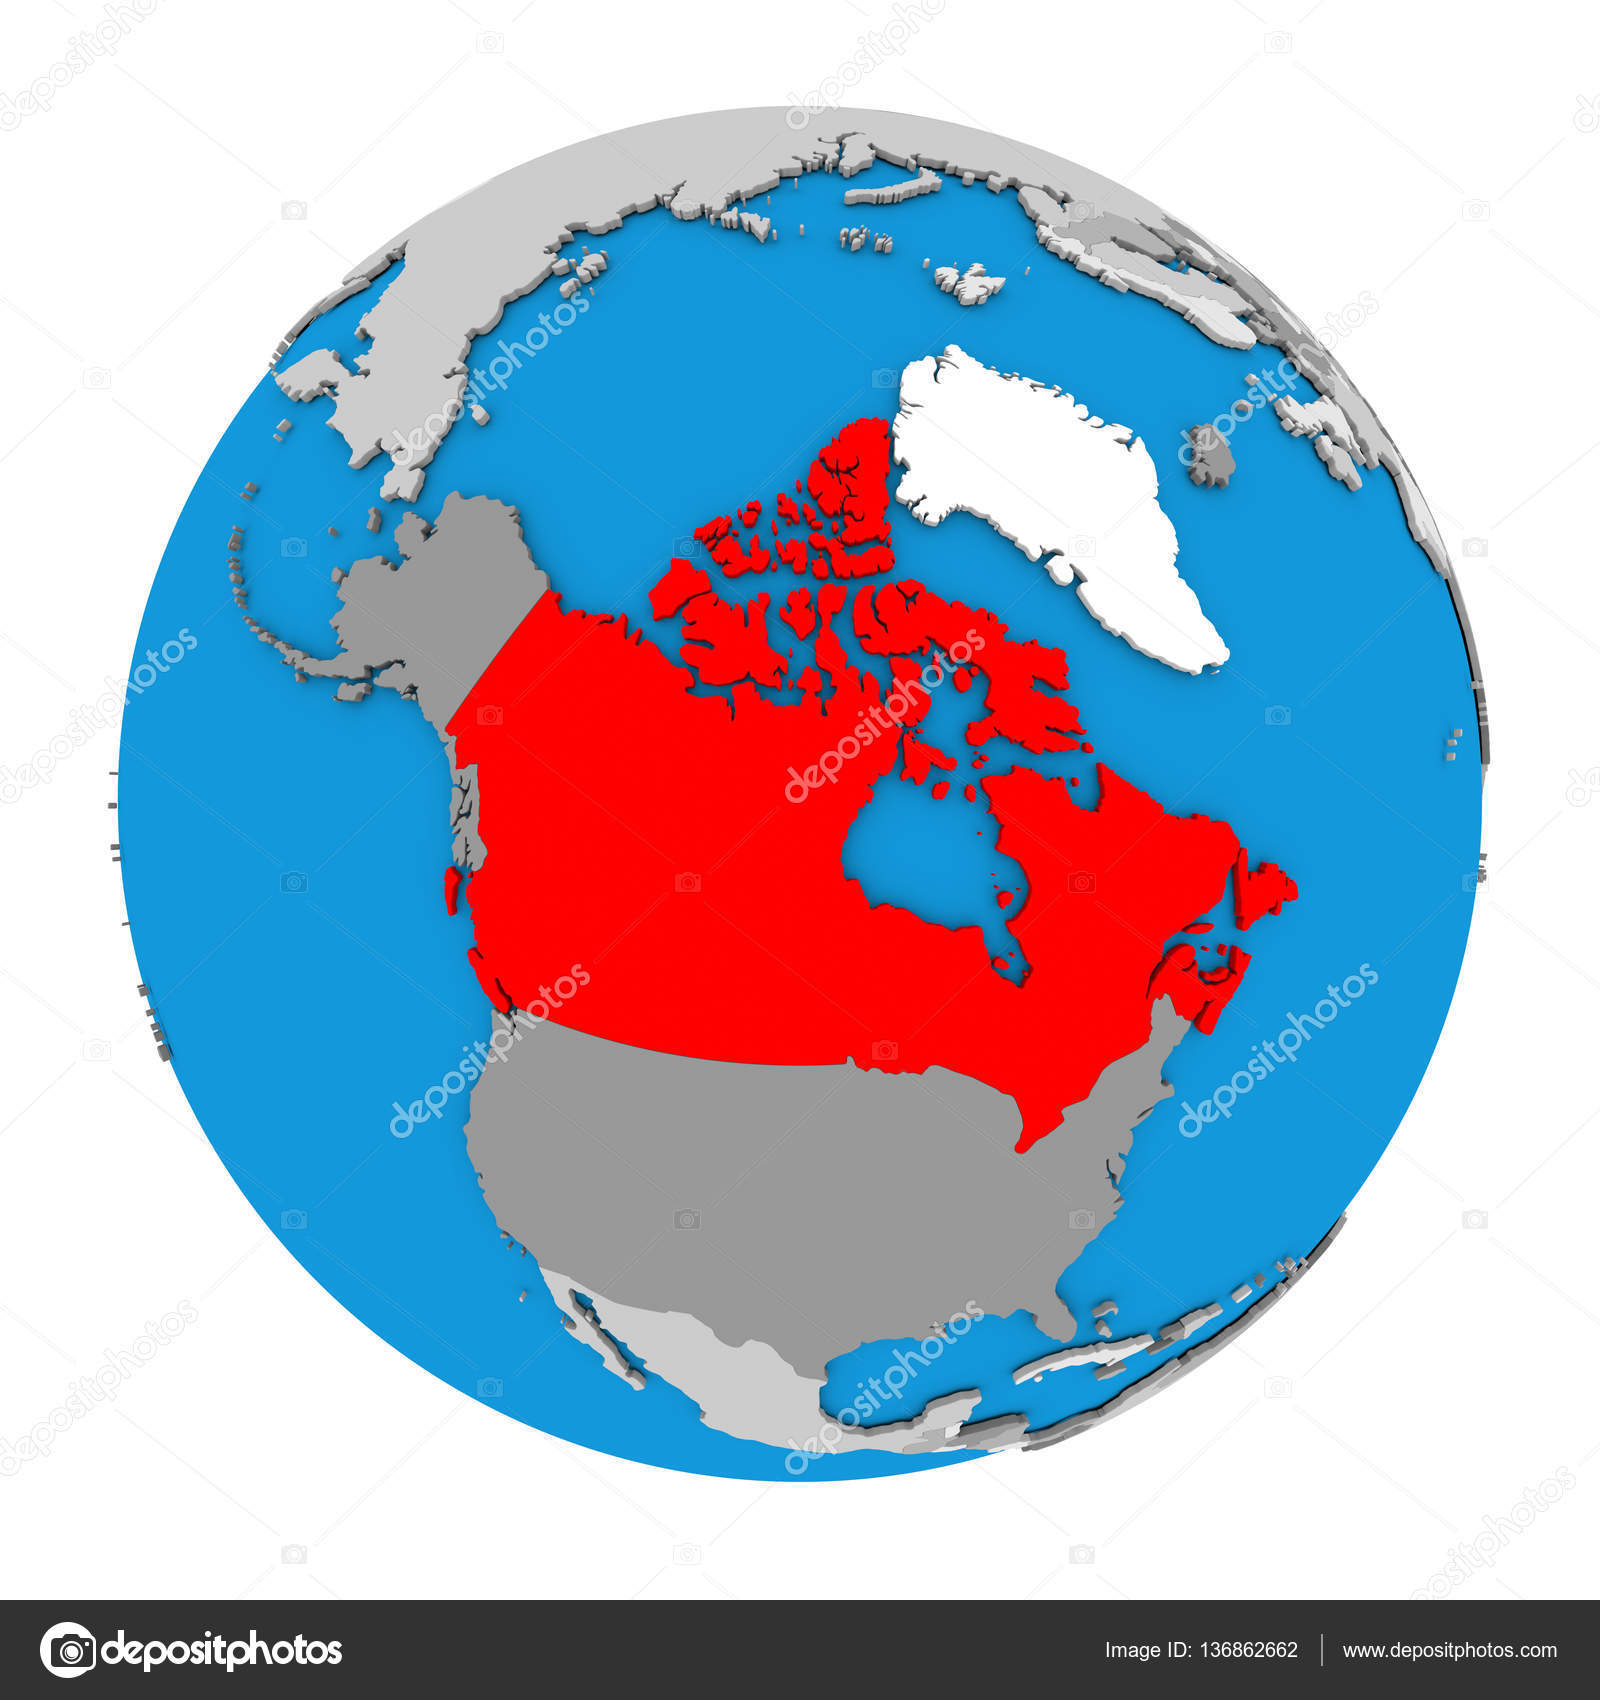 Canada on globe stock photo tomiger 136862662 map of canada highlighted in red on globe 3d illustration isolated on white background photo by tomiger gumiabroncs Image collections